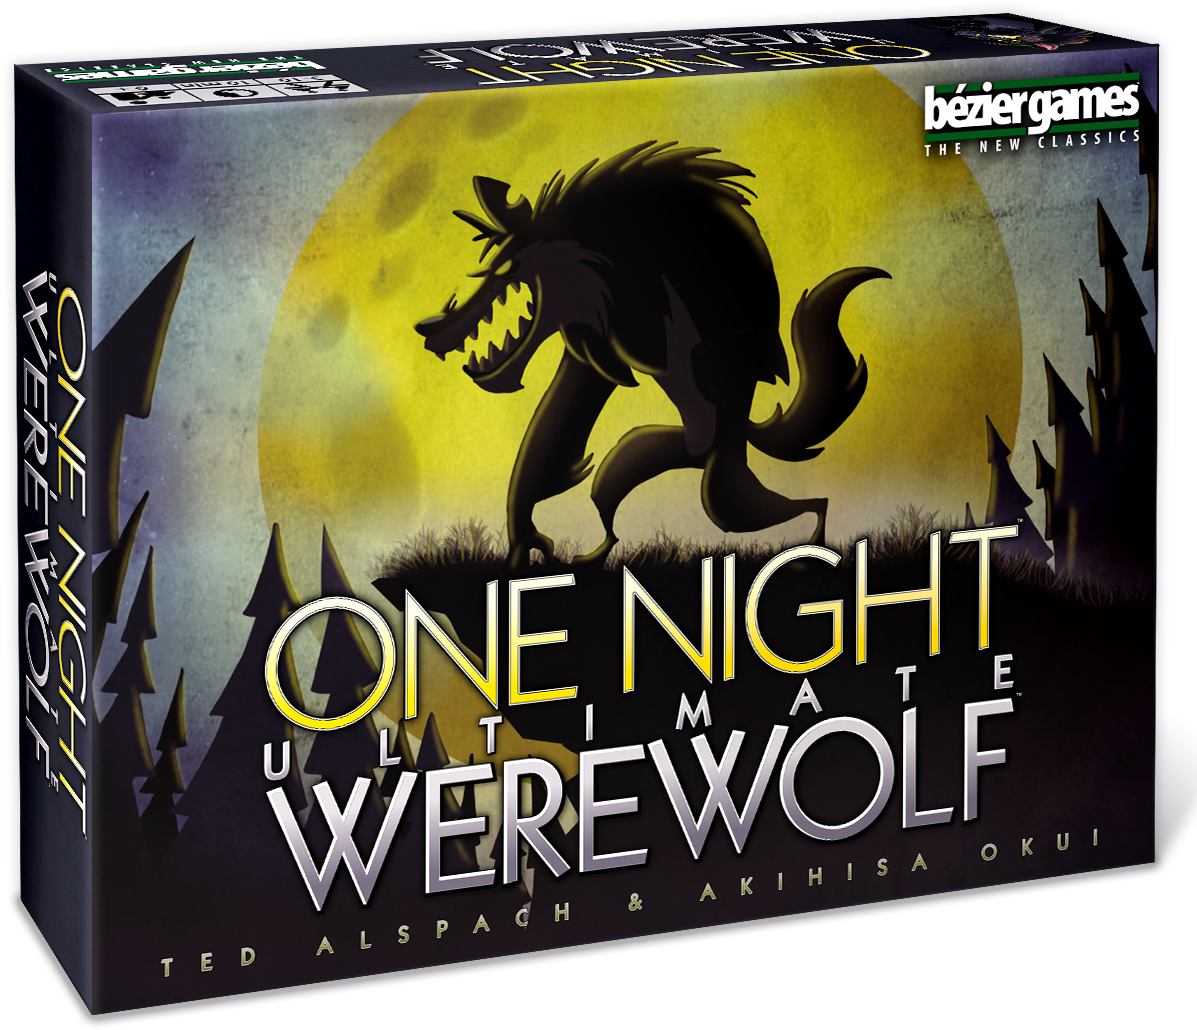 [15 mins] One Night Ultimate Werewolf